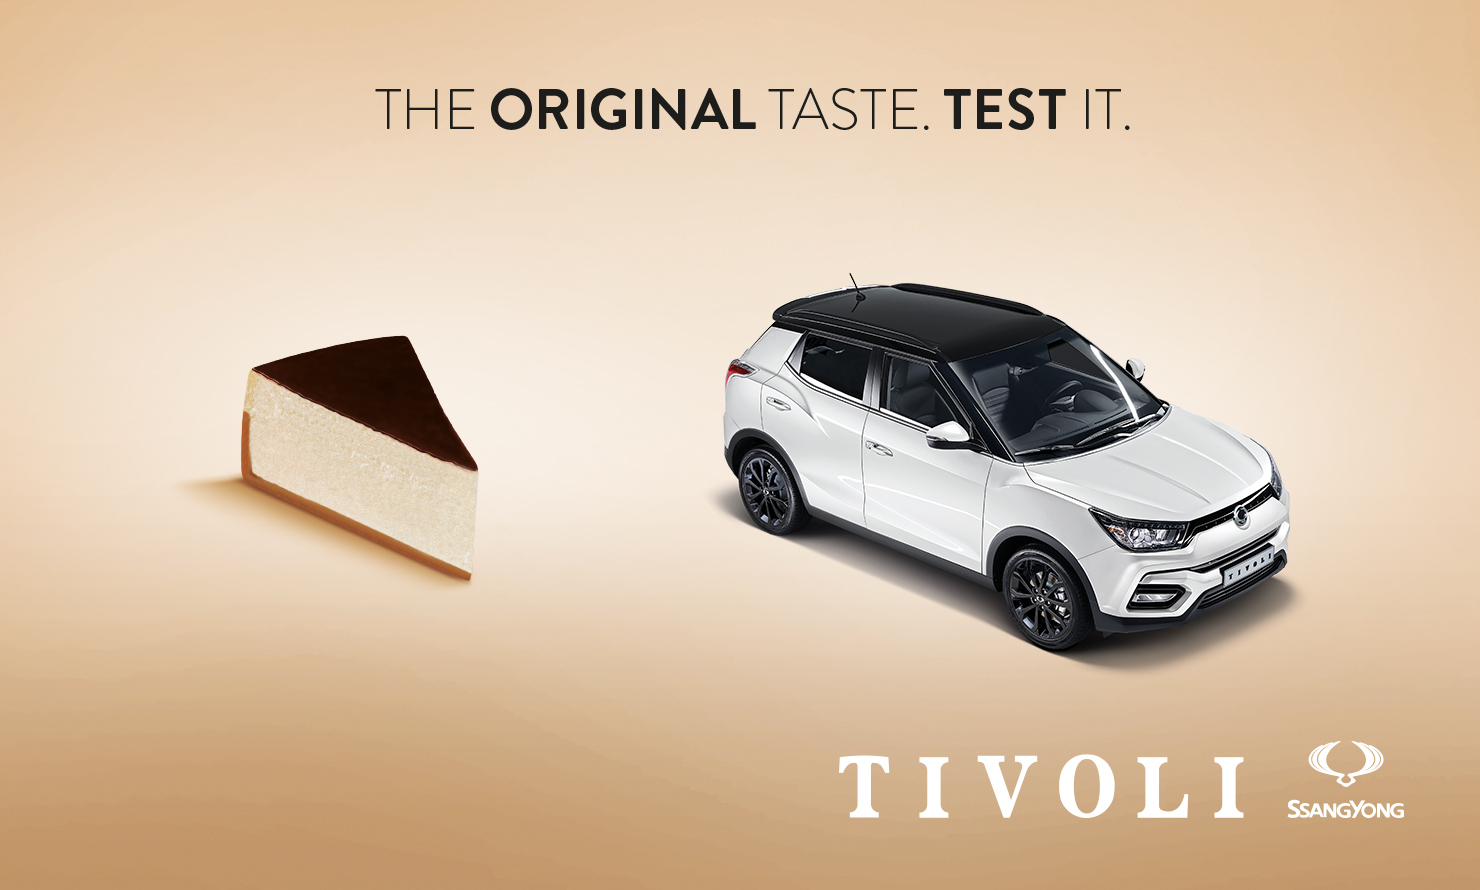 https://kubelibre.com/uploads/Slider-work-tutti-clienti/ssangyong-tivoli-the-original-taste-test-it-1.jpg